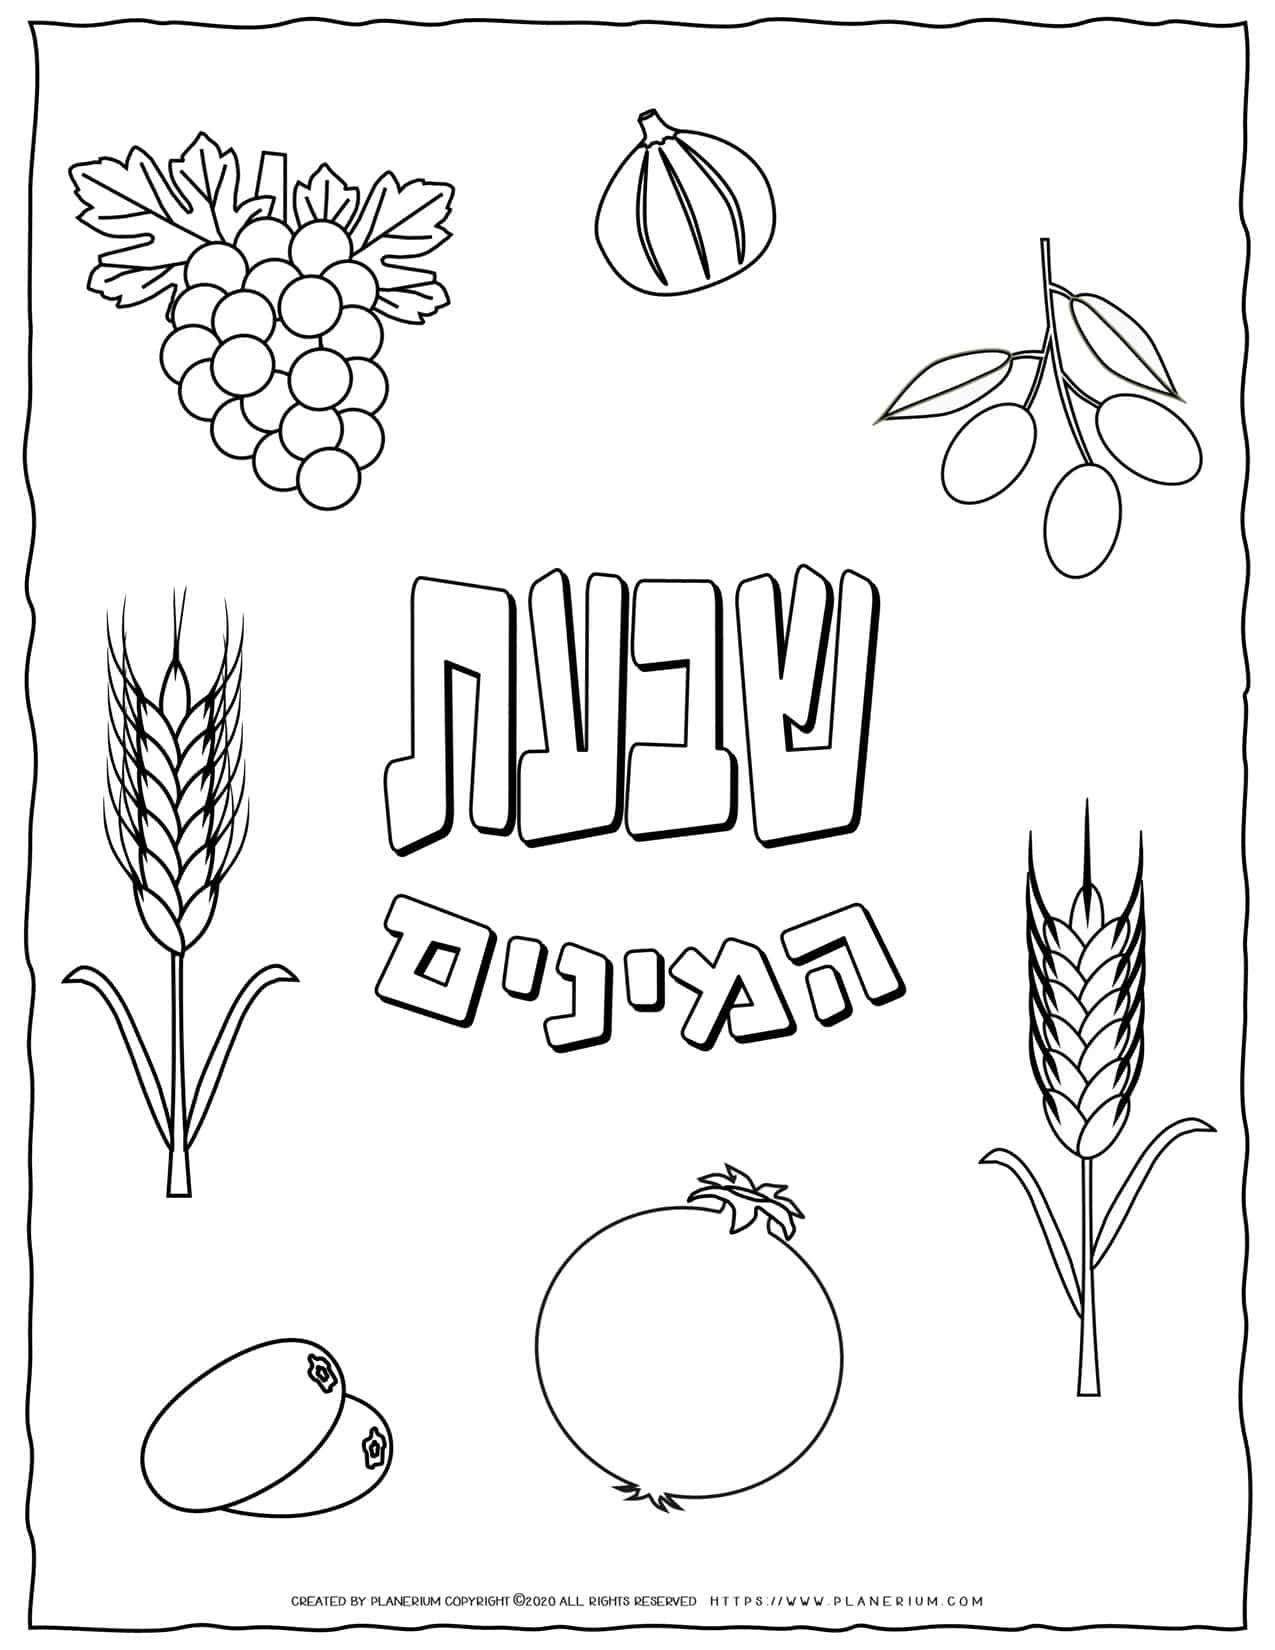 Shavuot Coloring Page - The Seven Species in Hebrew | Planerium